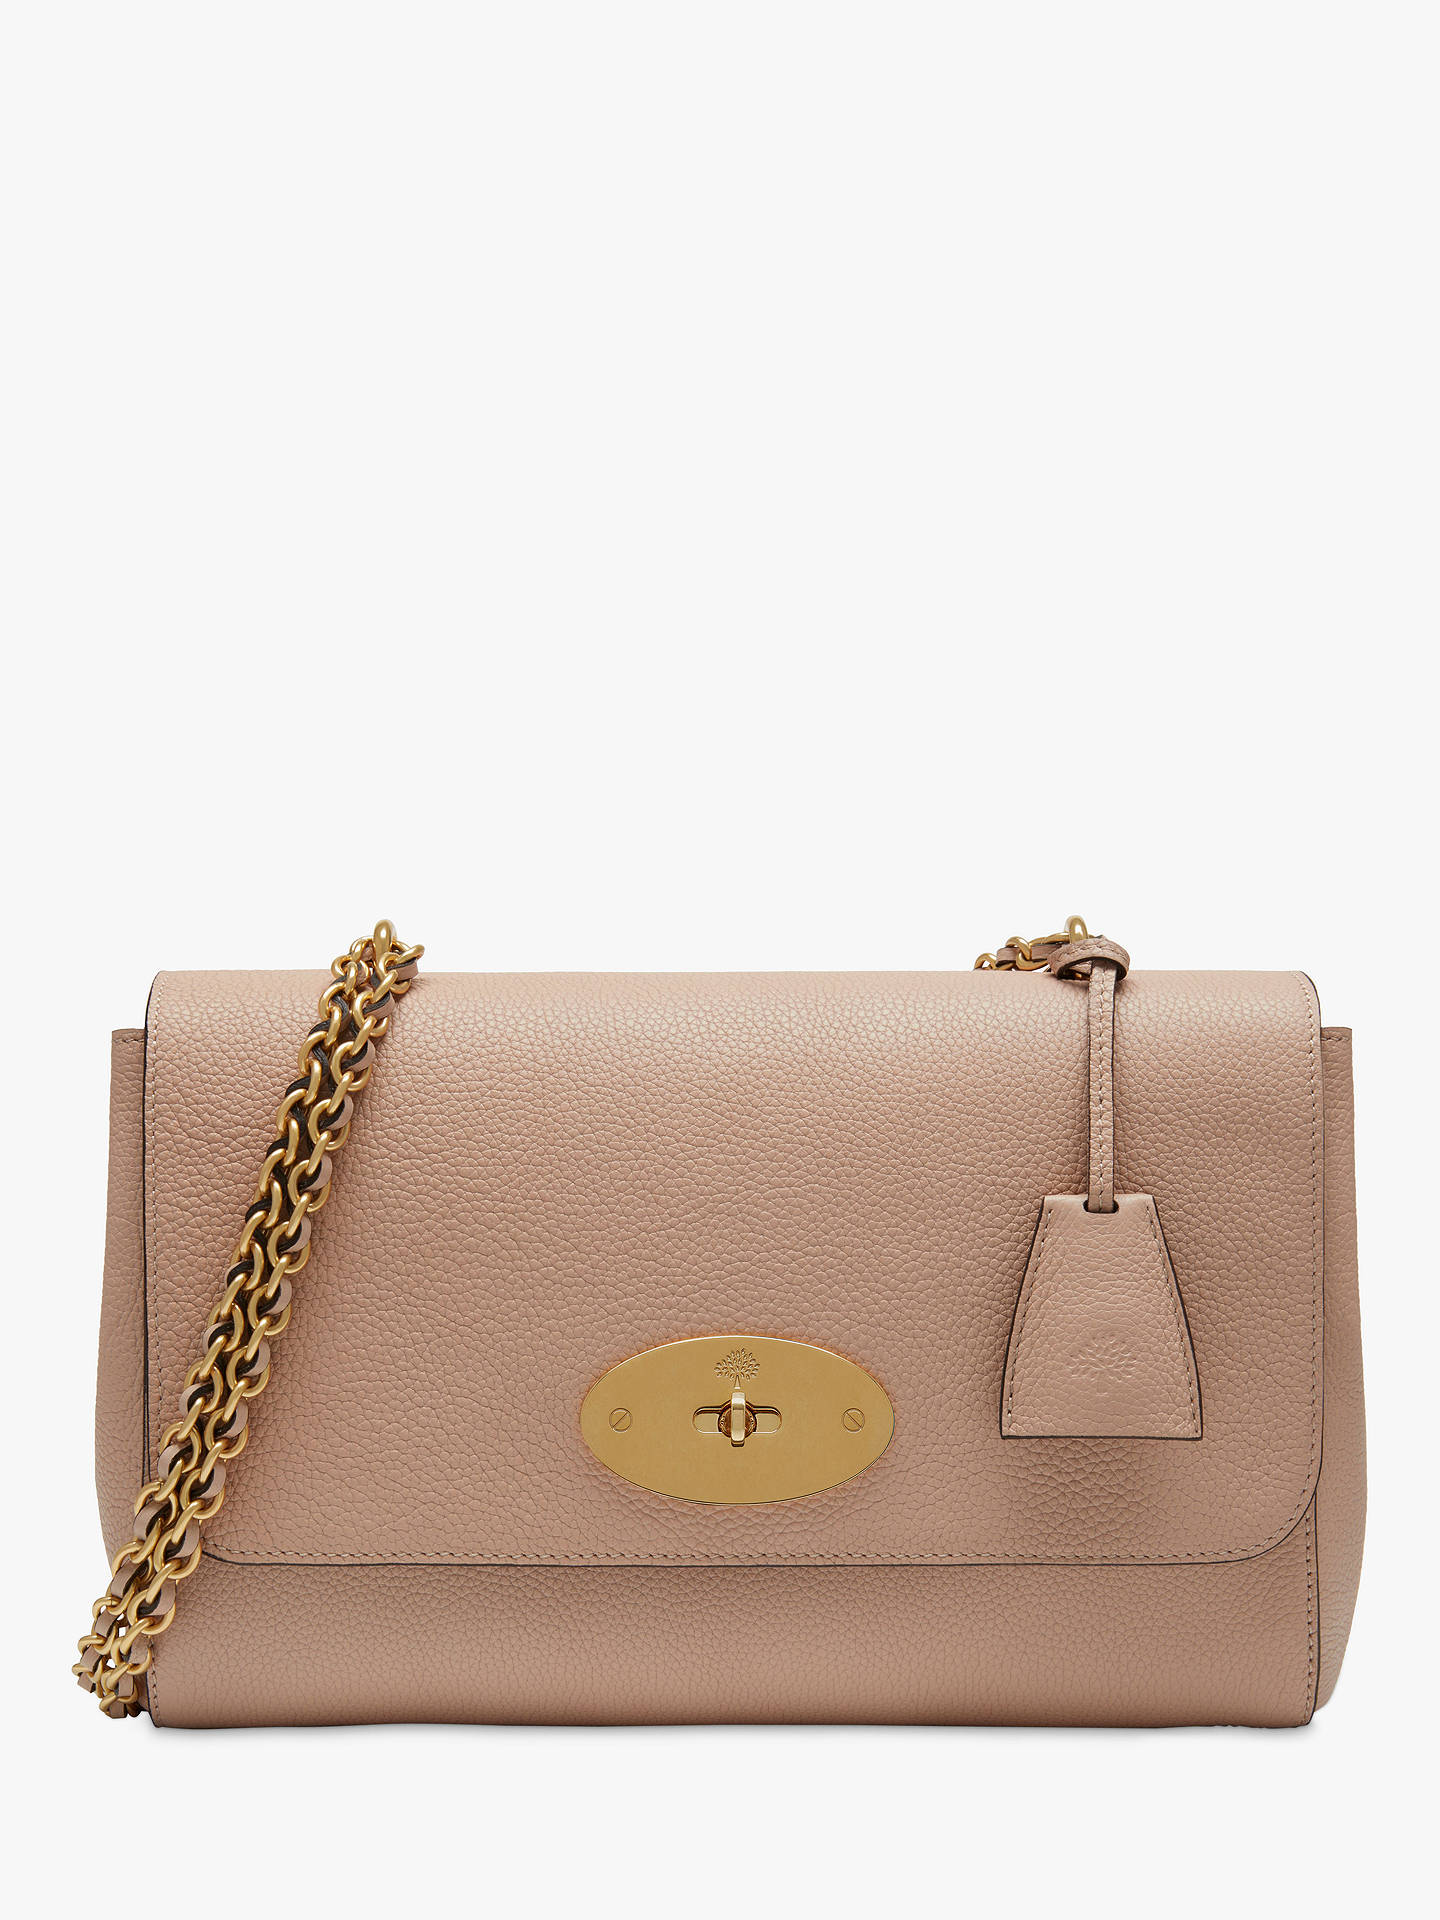 055f00bada9 BuyMulberry Medium Lily Classic Grain Leather Shoulder Bag, Rosewater  Online at johnlewis.com ...